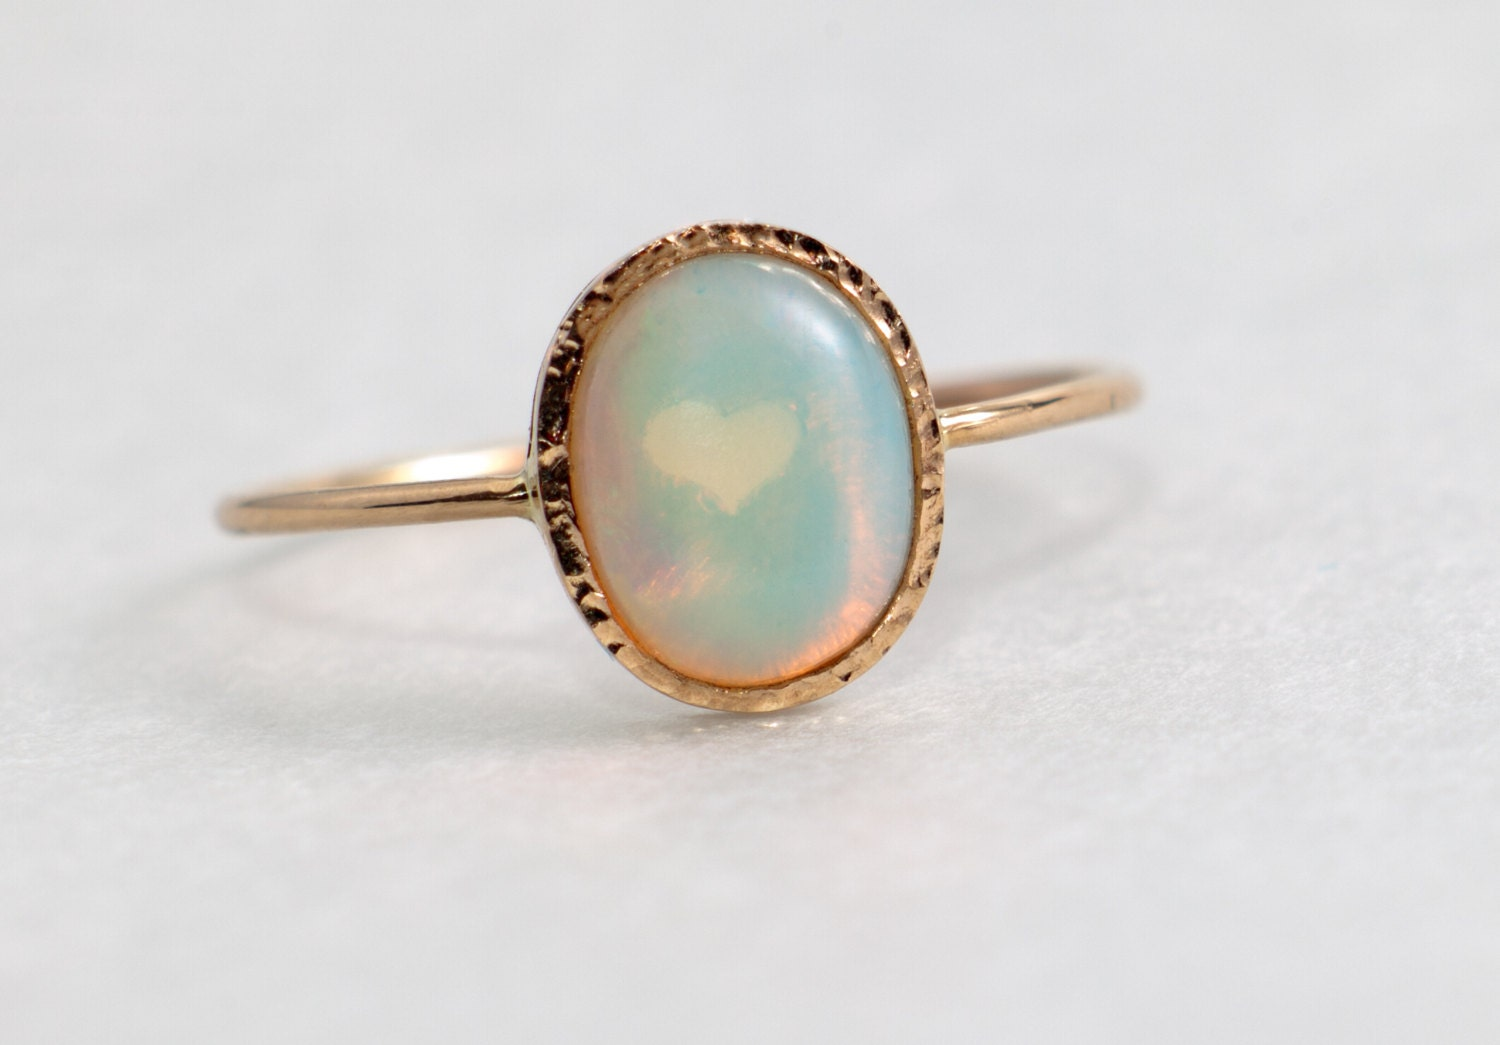 fire opal engagement ring solid 14k gold opal jewelry. Black Bedroom Furniture Sets. Home Design Ideas